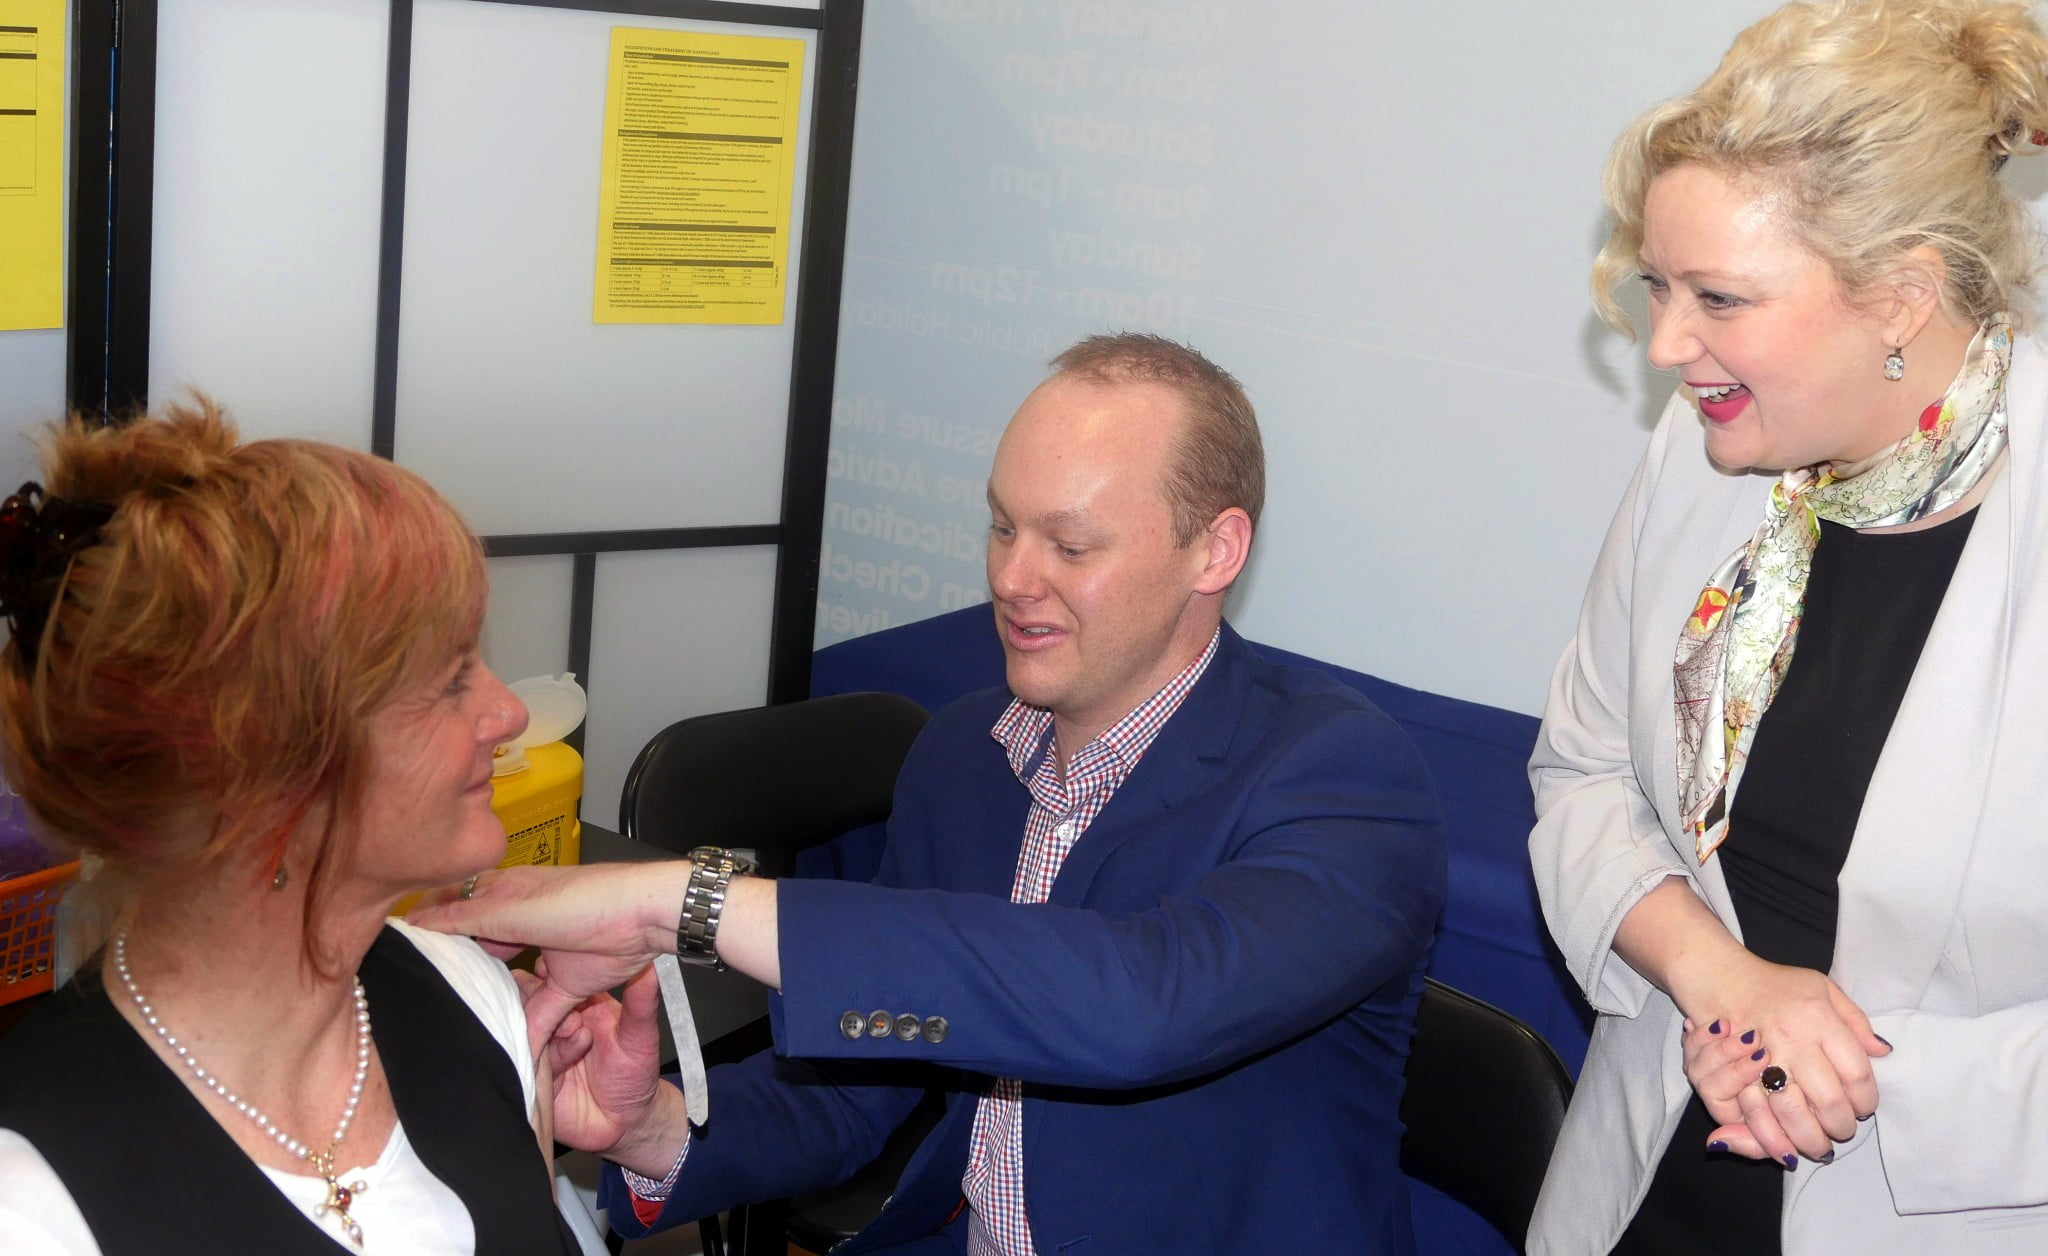 PSA Victorian Branch President Ben Marchant administers the first vaccination by a pharmacist to new grandma Kathleen Philip in Melbourne today watched on by Victorian Health Minister Jill Hennessy MP.